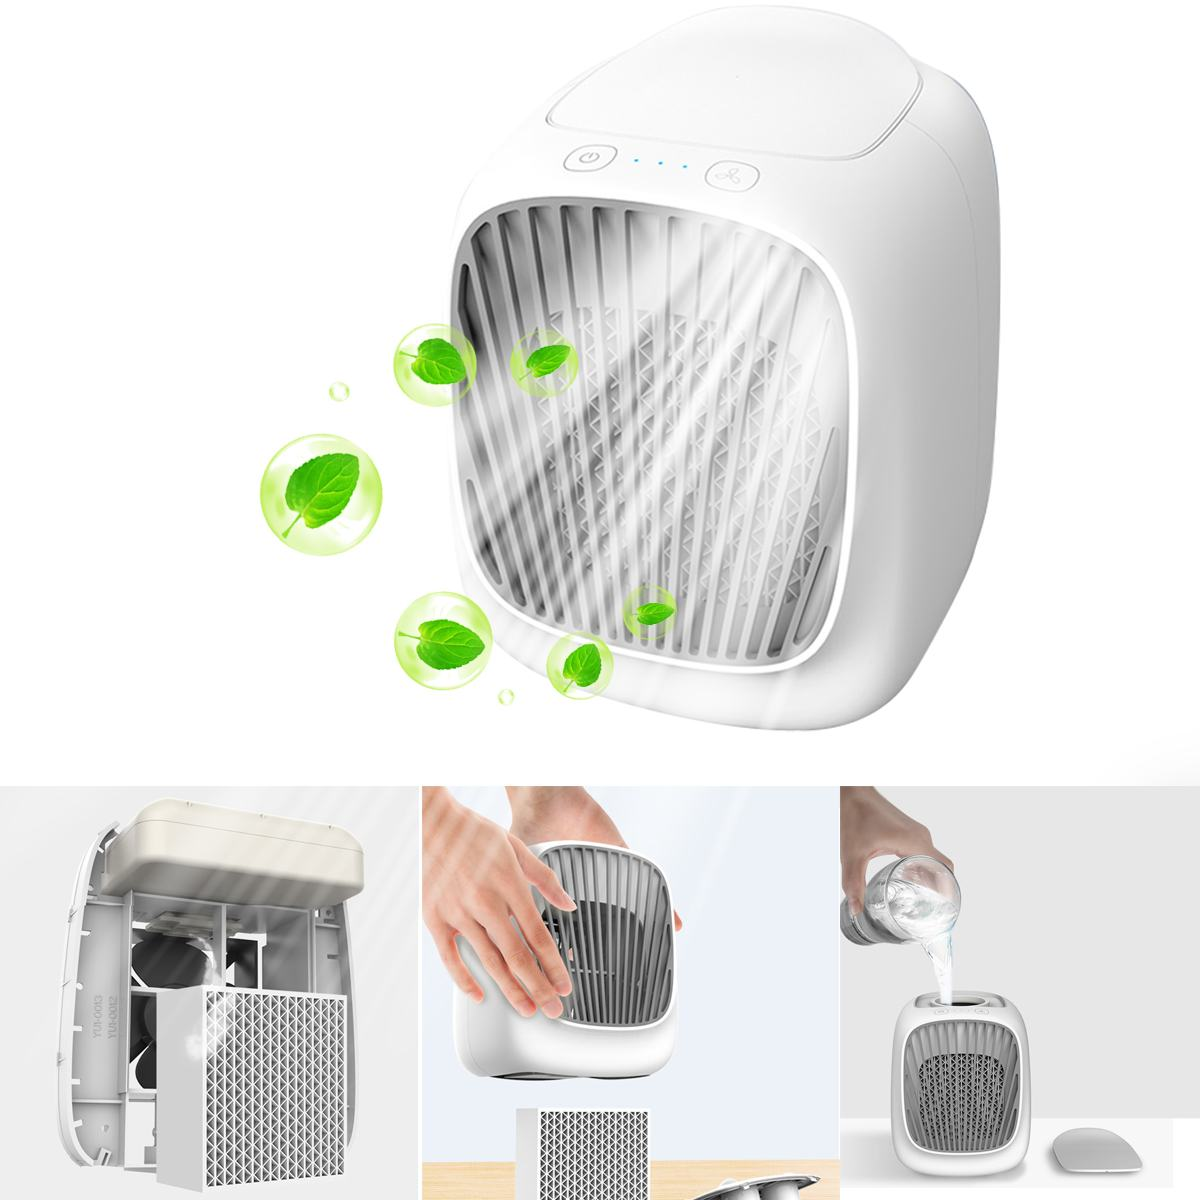 USB Charging Home Vents Mini Air Conditioner Office Water Cooling Fan Portable USB Air Humidifier Purifier Cooler Desktop Fan